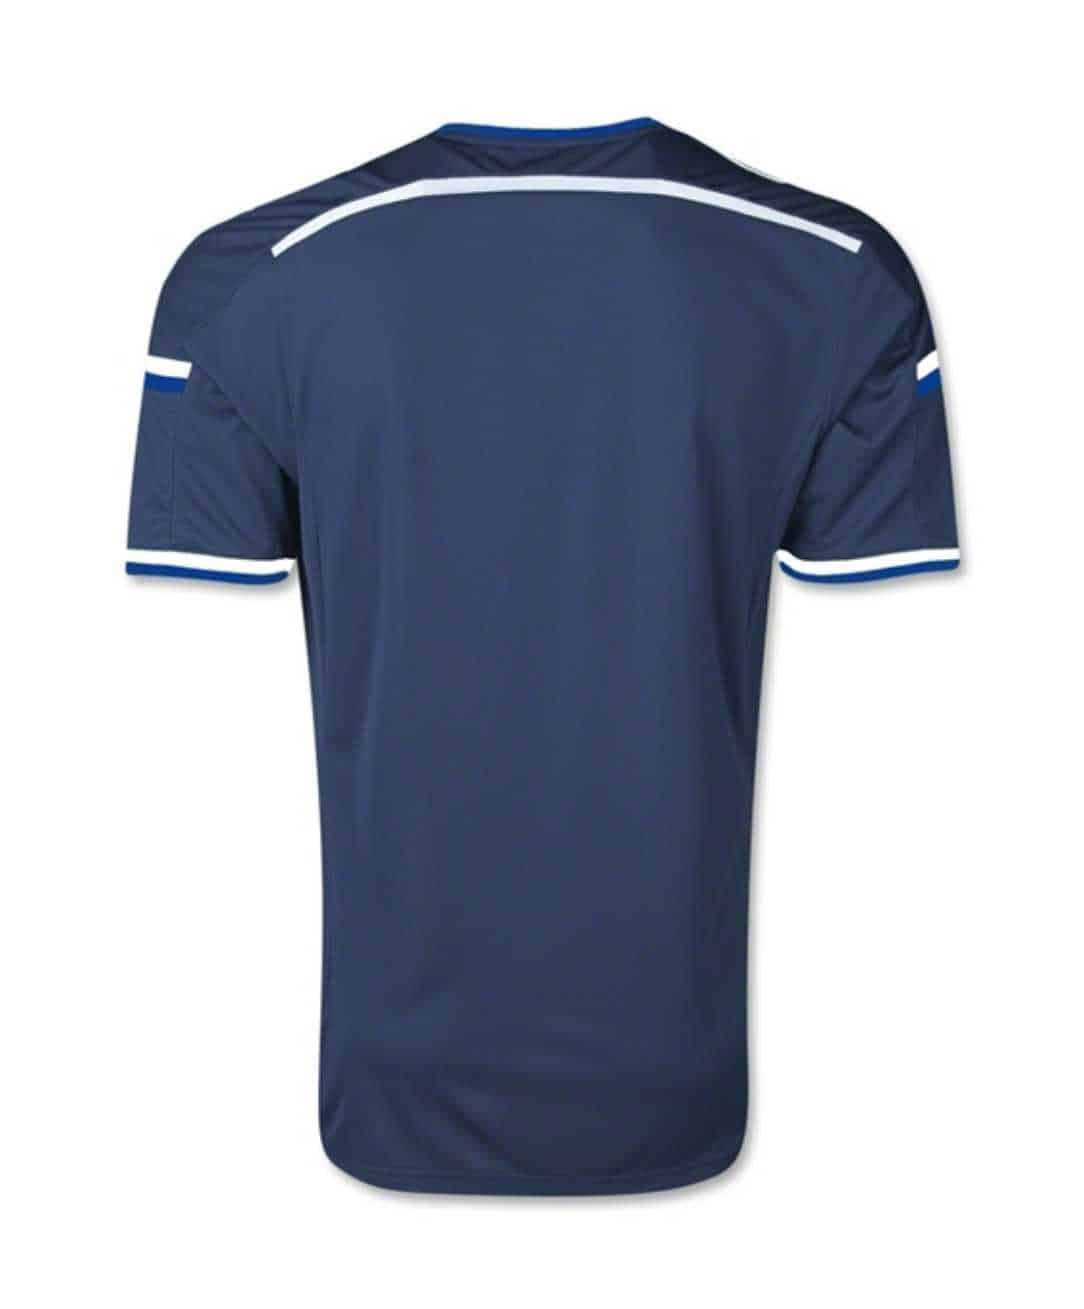 adidas Condivo 14 Soccer Uniform - TheTeamFactory.com - photo#31